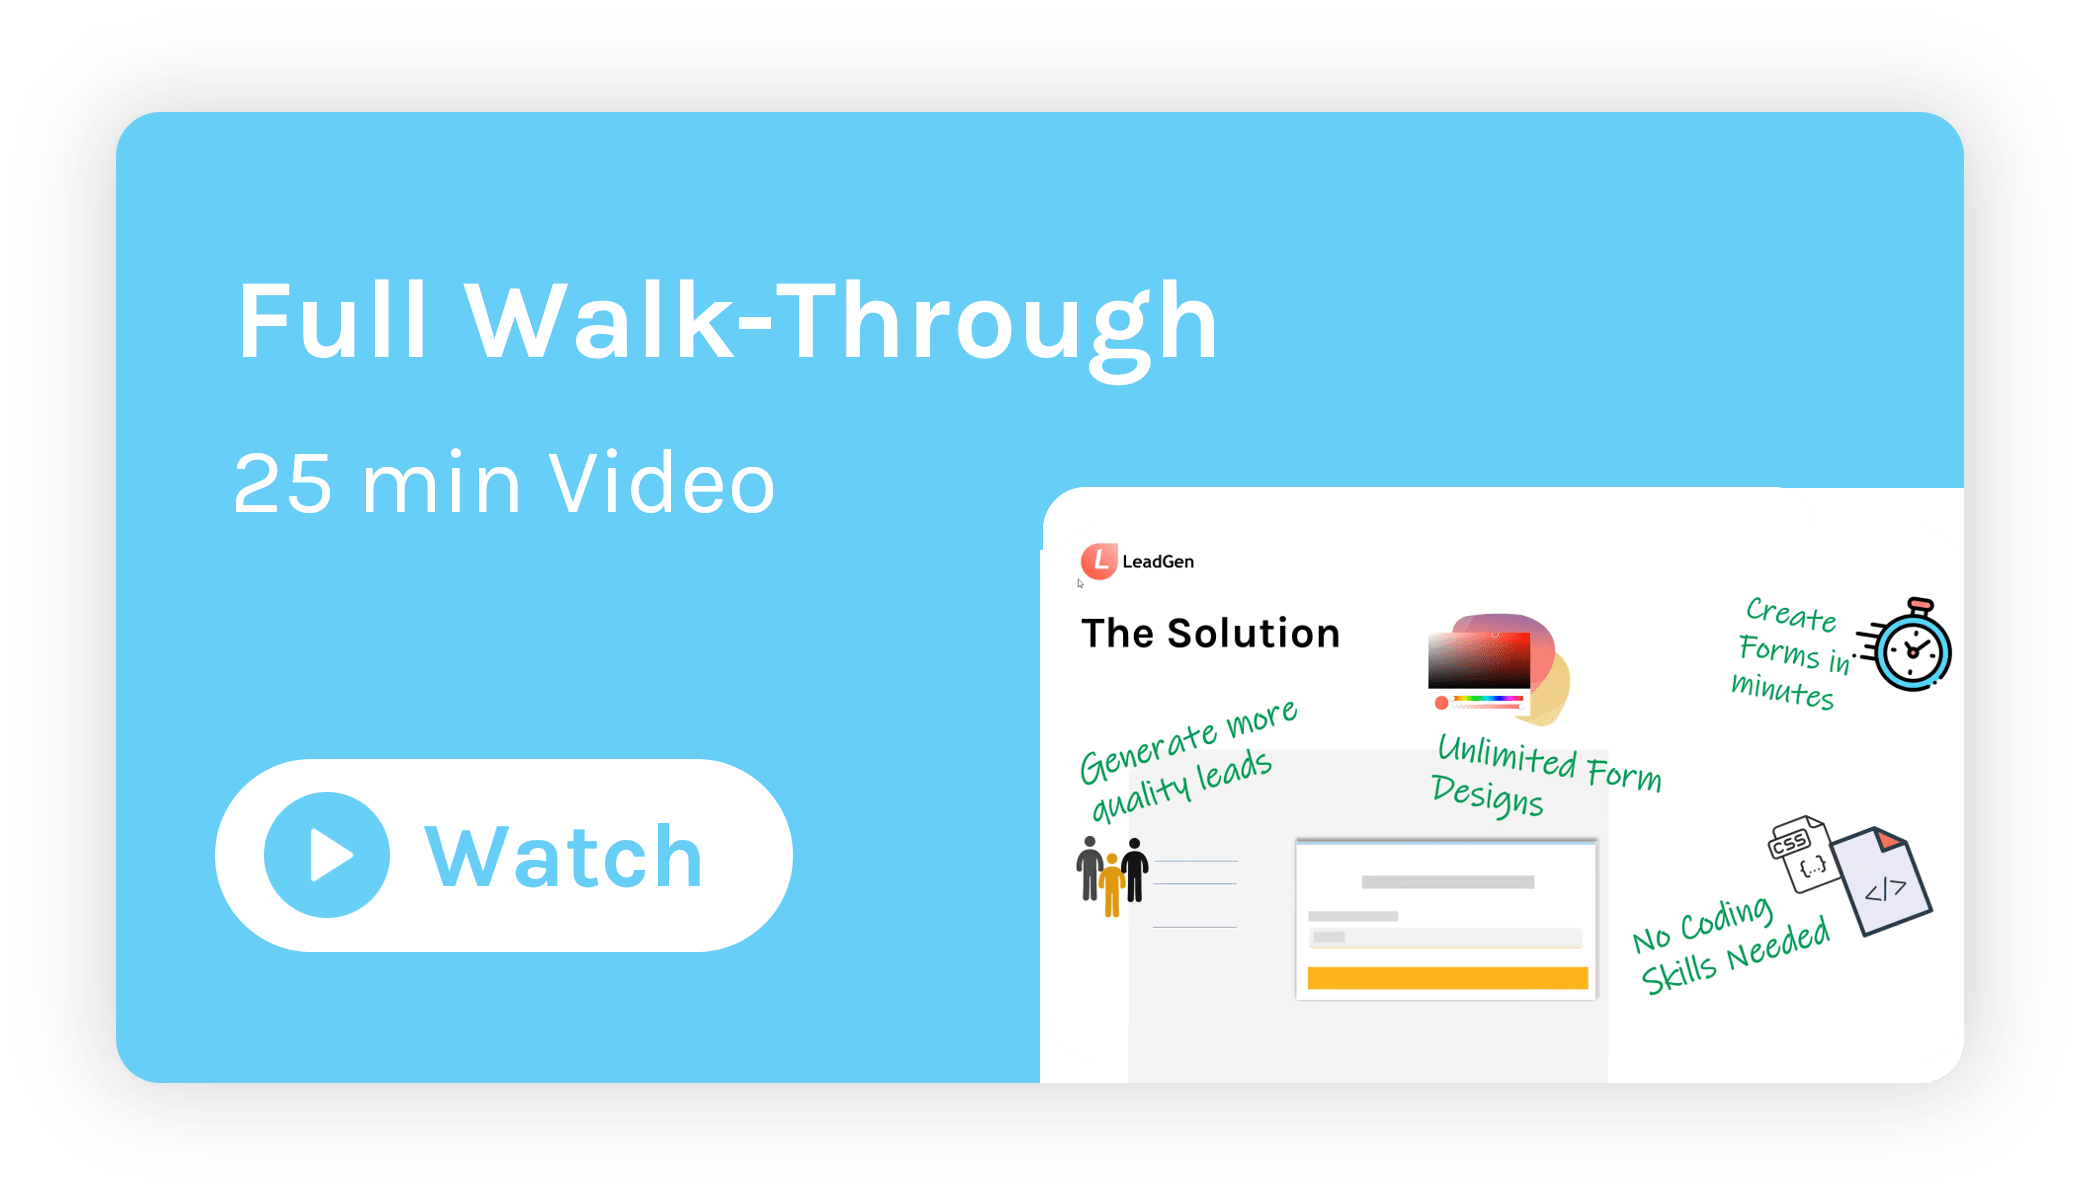 Full walk-through into LeadGen App